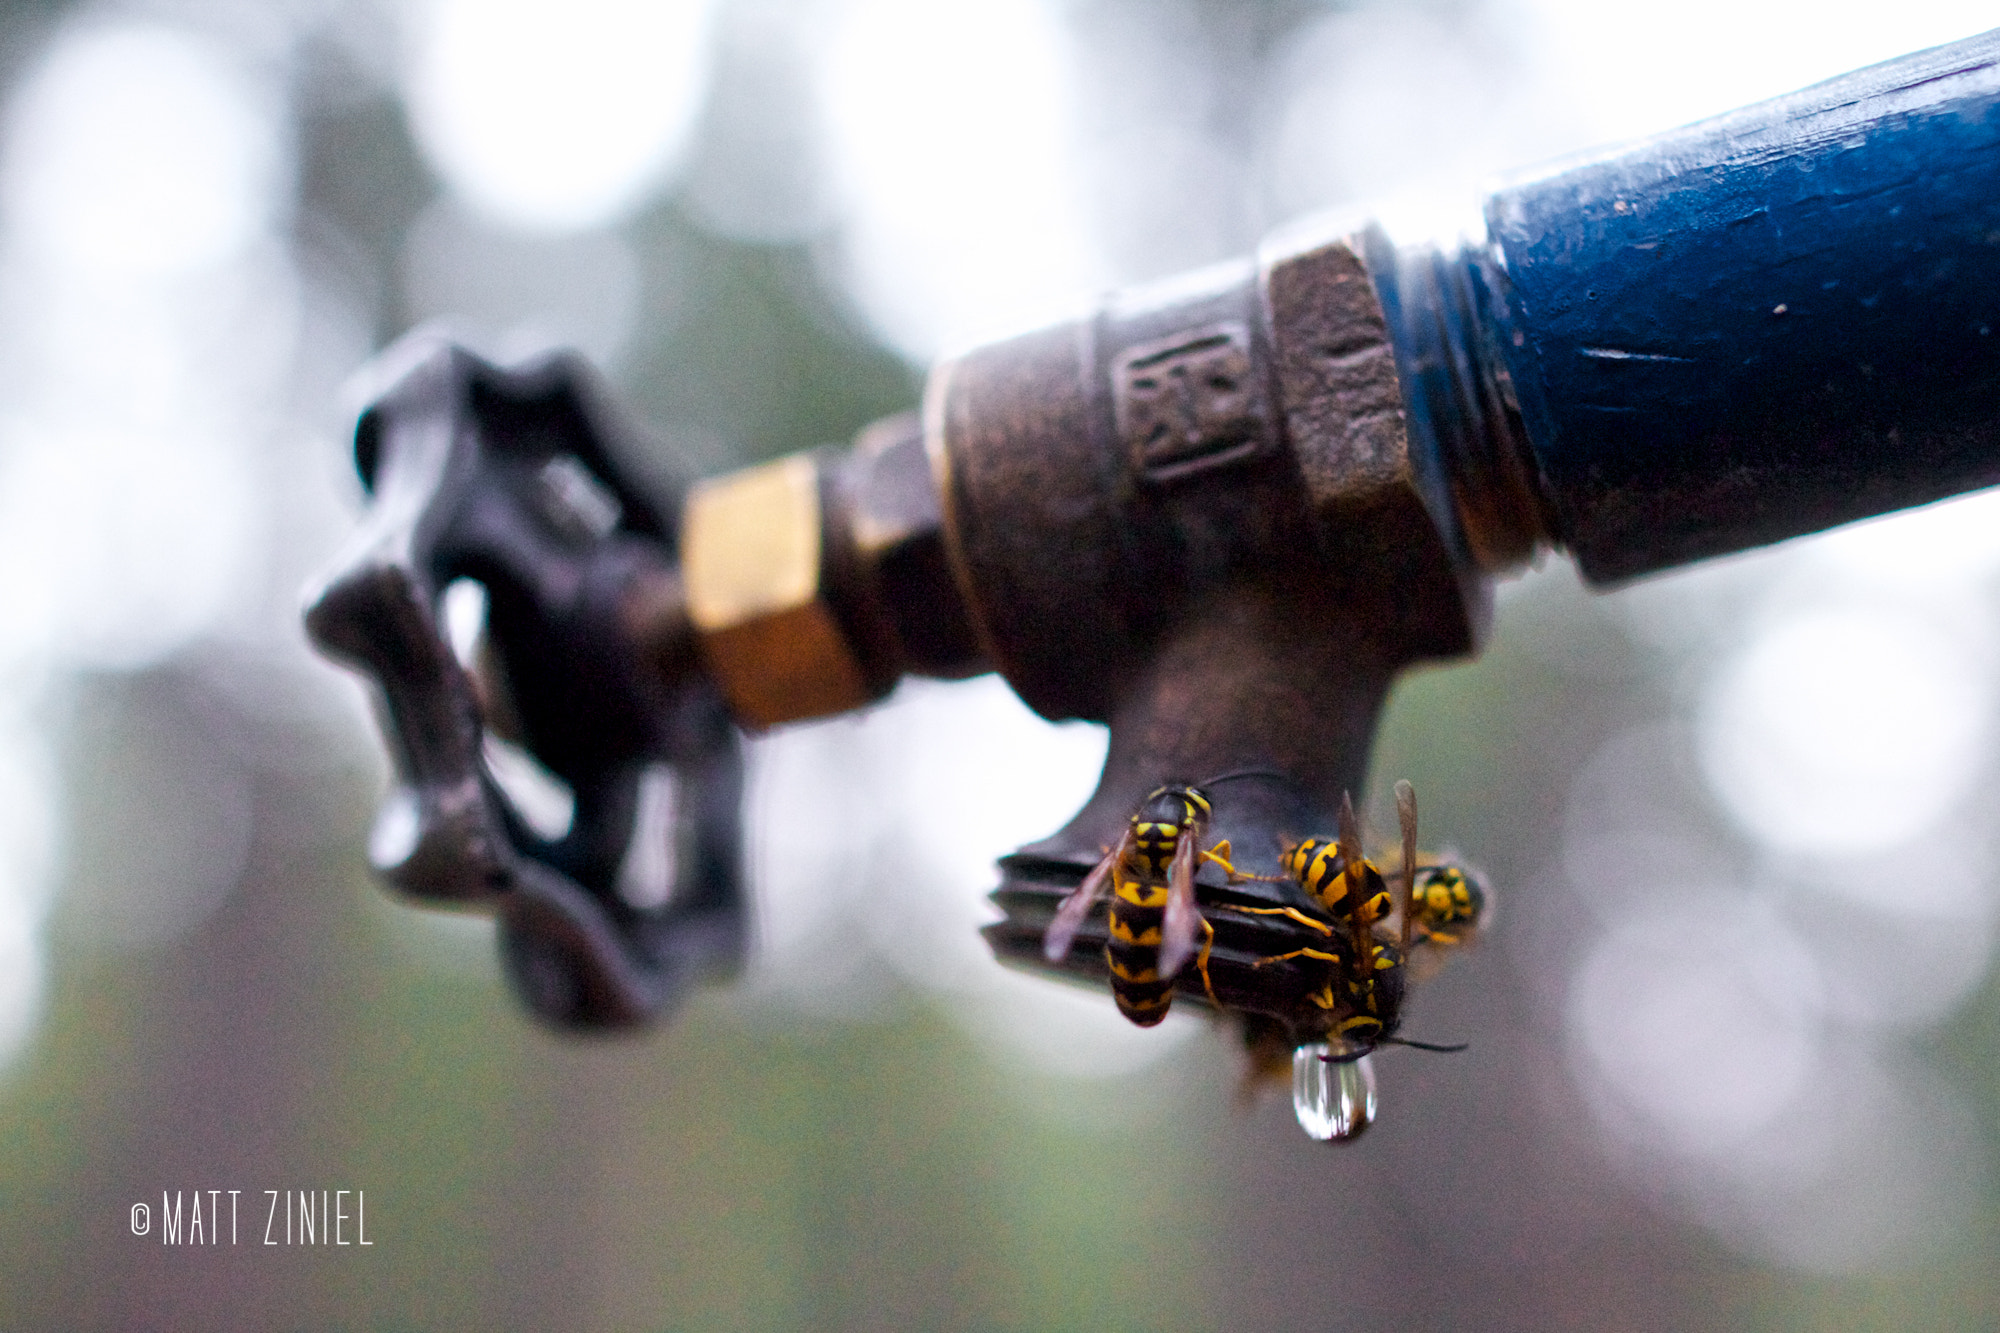 Photograph Thirsty Bees by Matt Ziniel on 500px